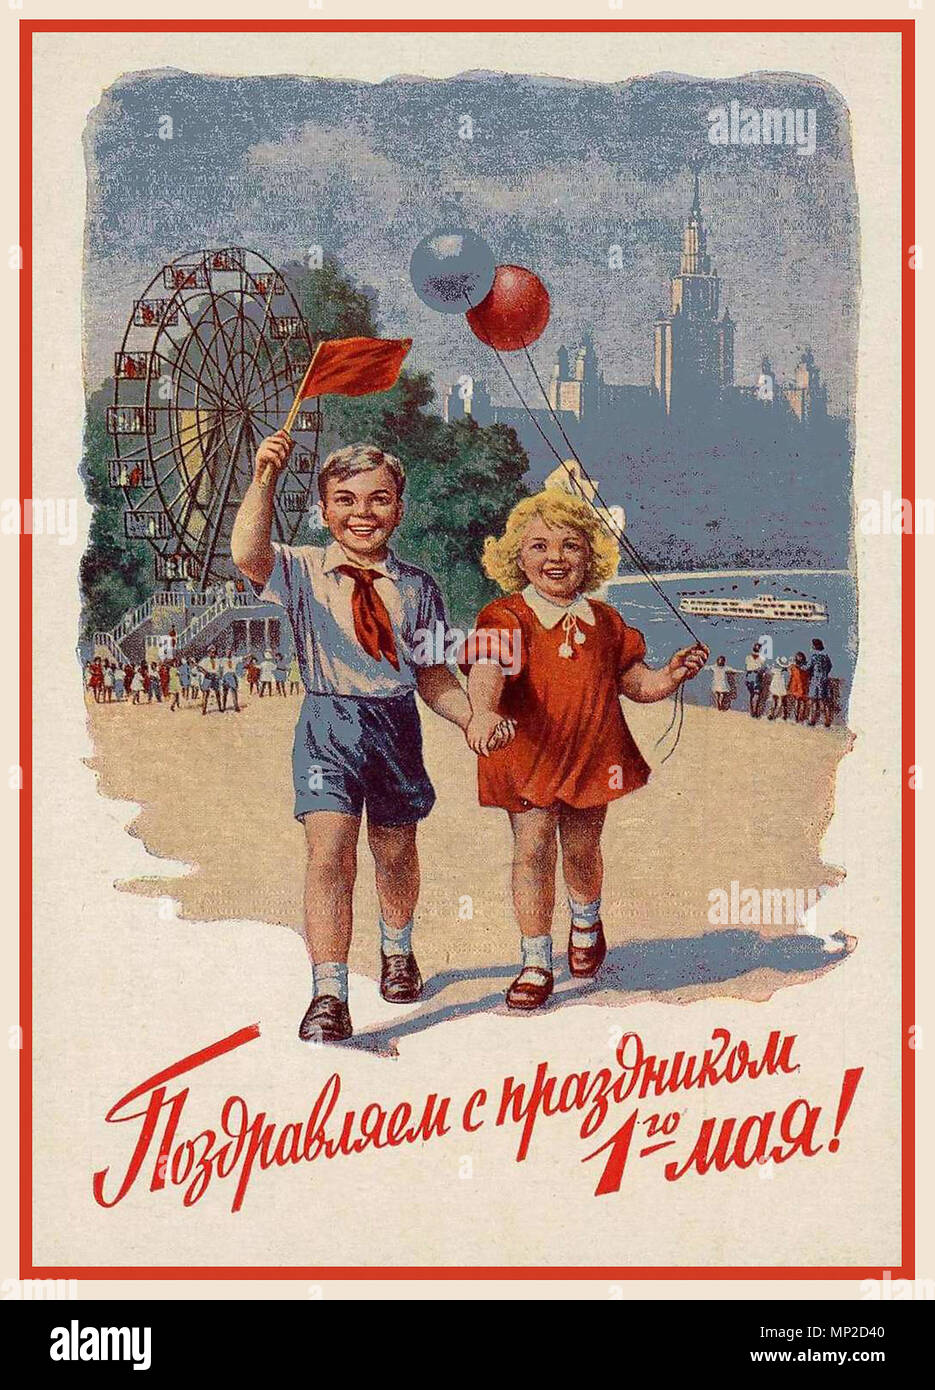 Vintage 1950's Soviet Propaganda Postcard celebrating 'MAY 1ST HOLIDAY OF SPRING AND LABOR'  national holiday known as International Workers Day for those who laboured jointly under Communism, and thus linking arms to build the brave new world. - Stock Image